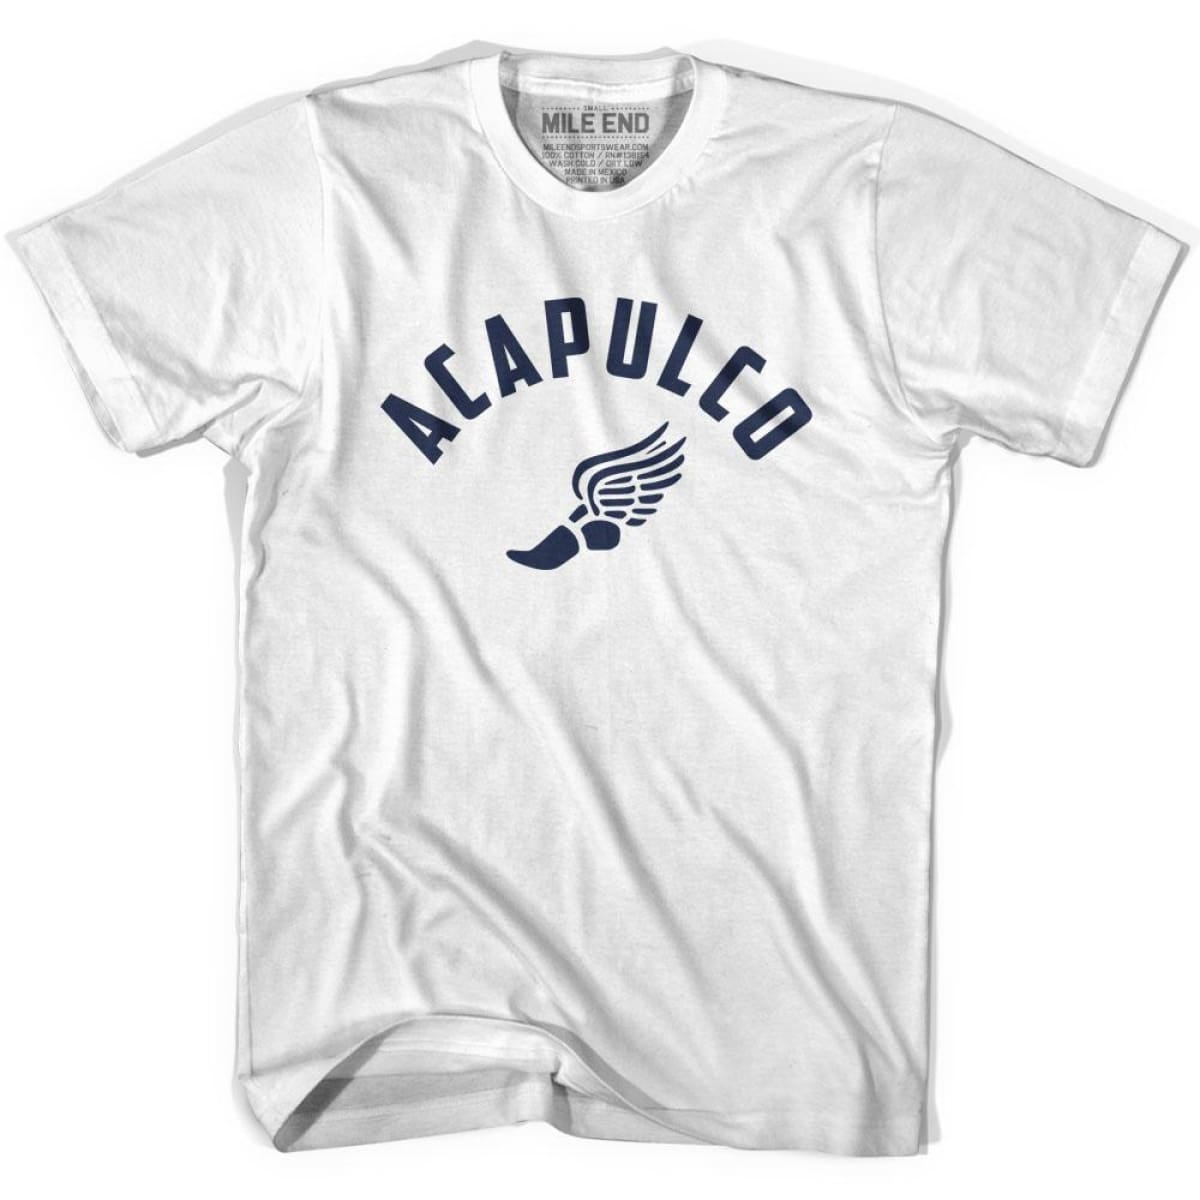 Acapulco Track T-shirt - White / Youth X-Small - Mile End Track